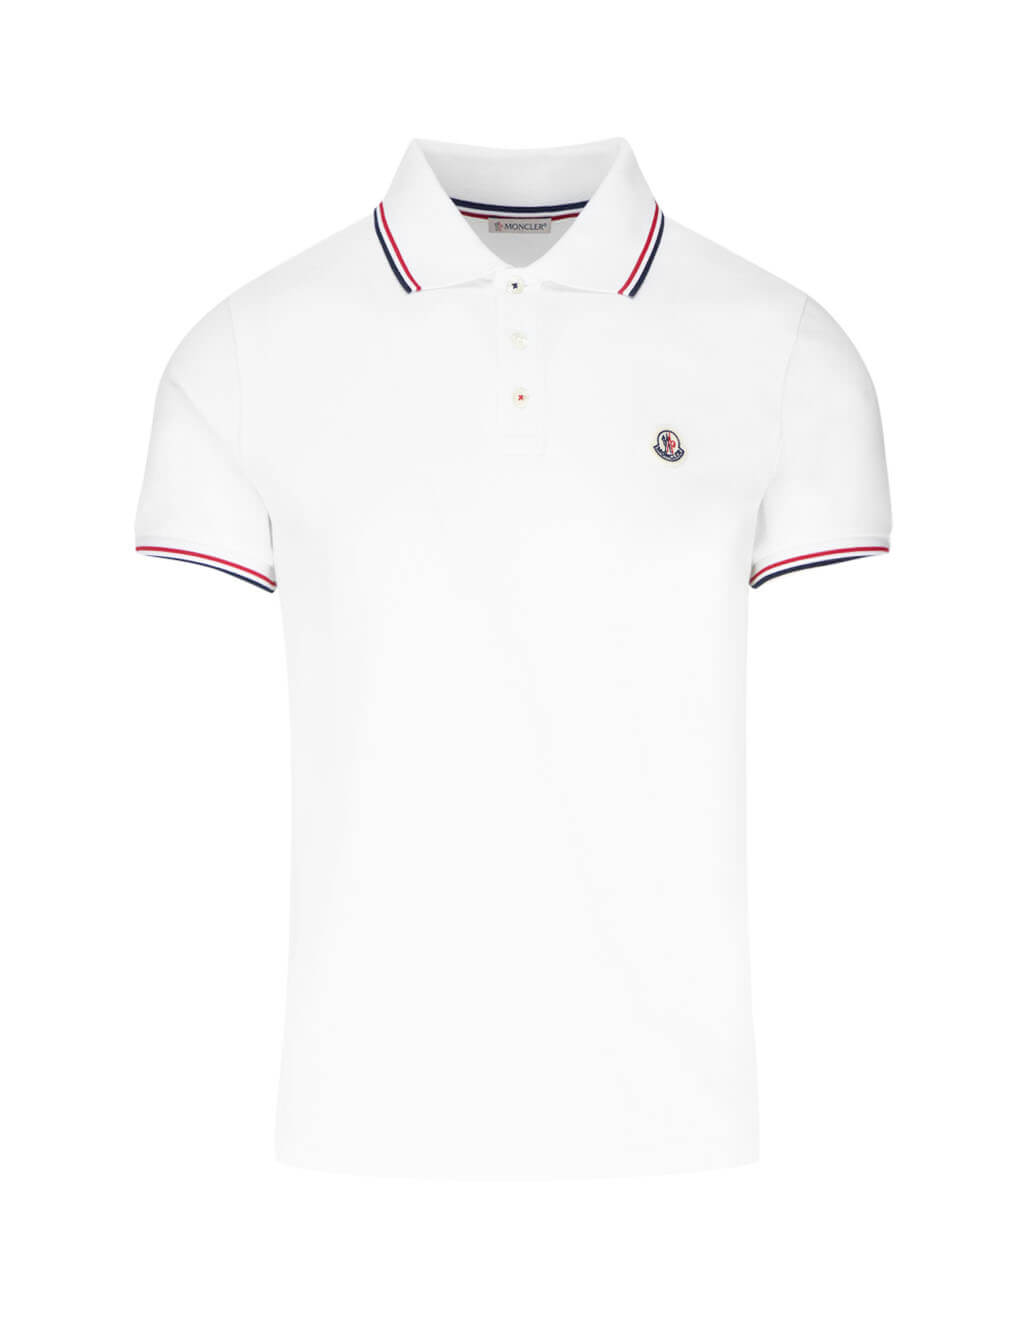 Moncler Men's Giulio Fashion White Cotton Classic Polo Shirt 834560084556001